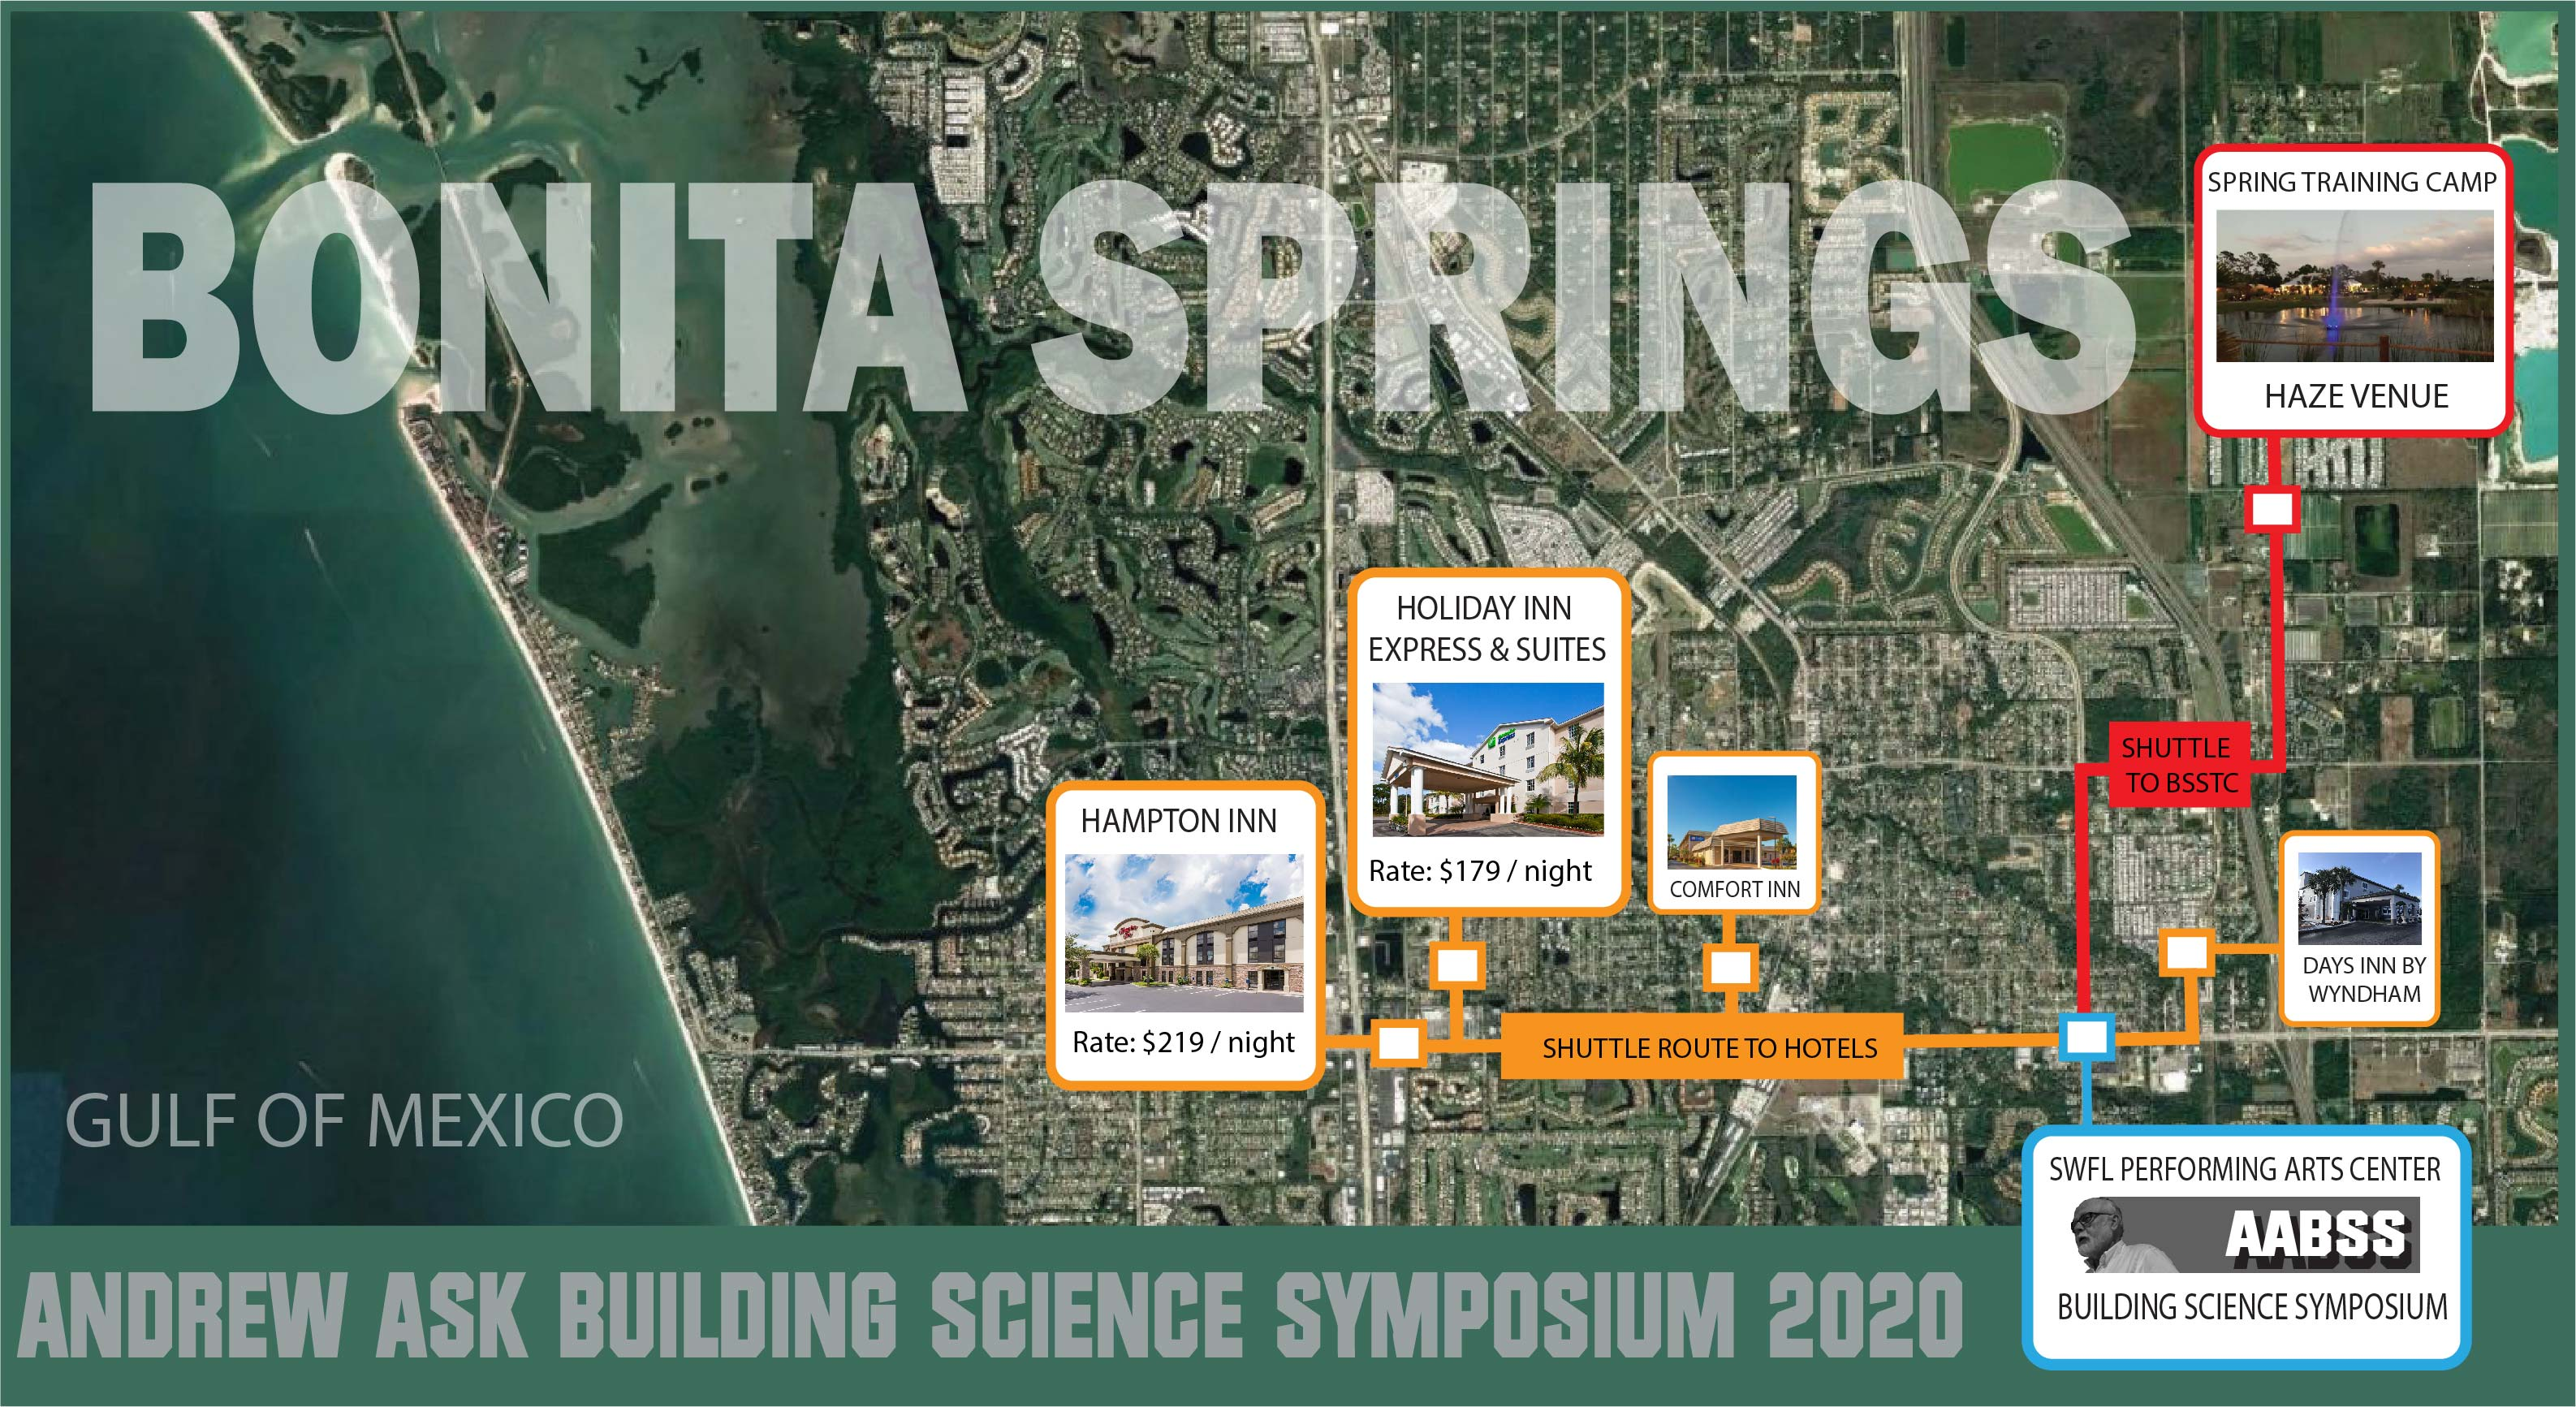 Building Science Spring Training Camp